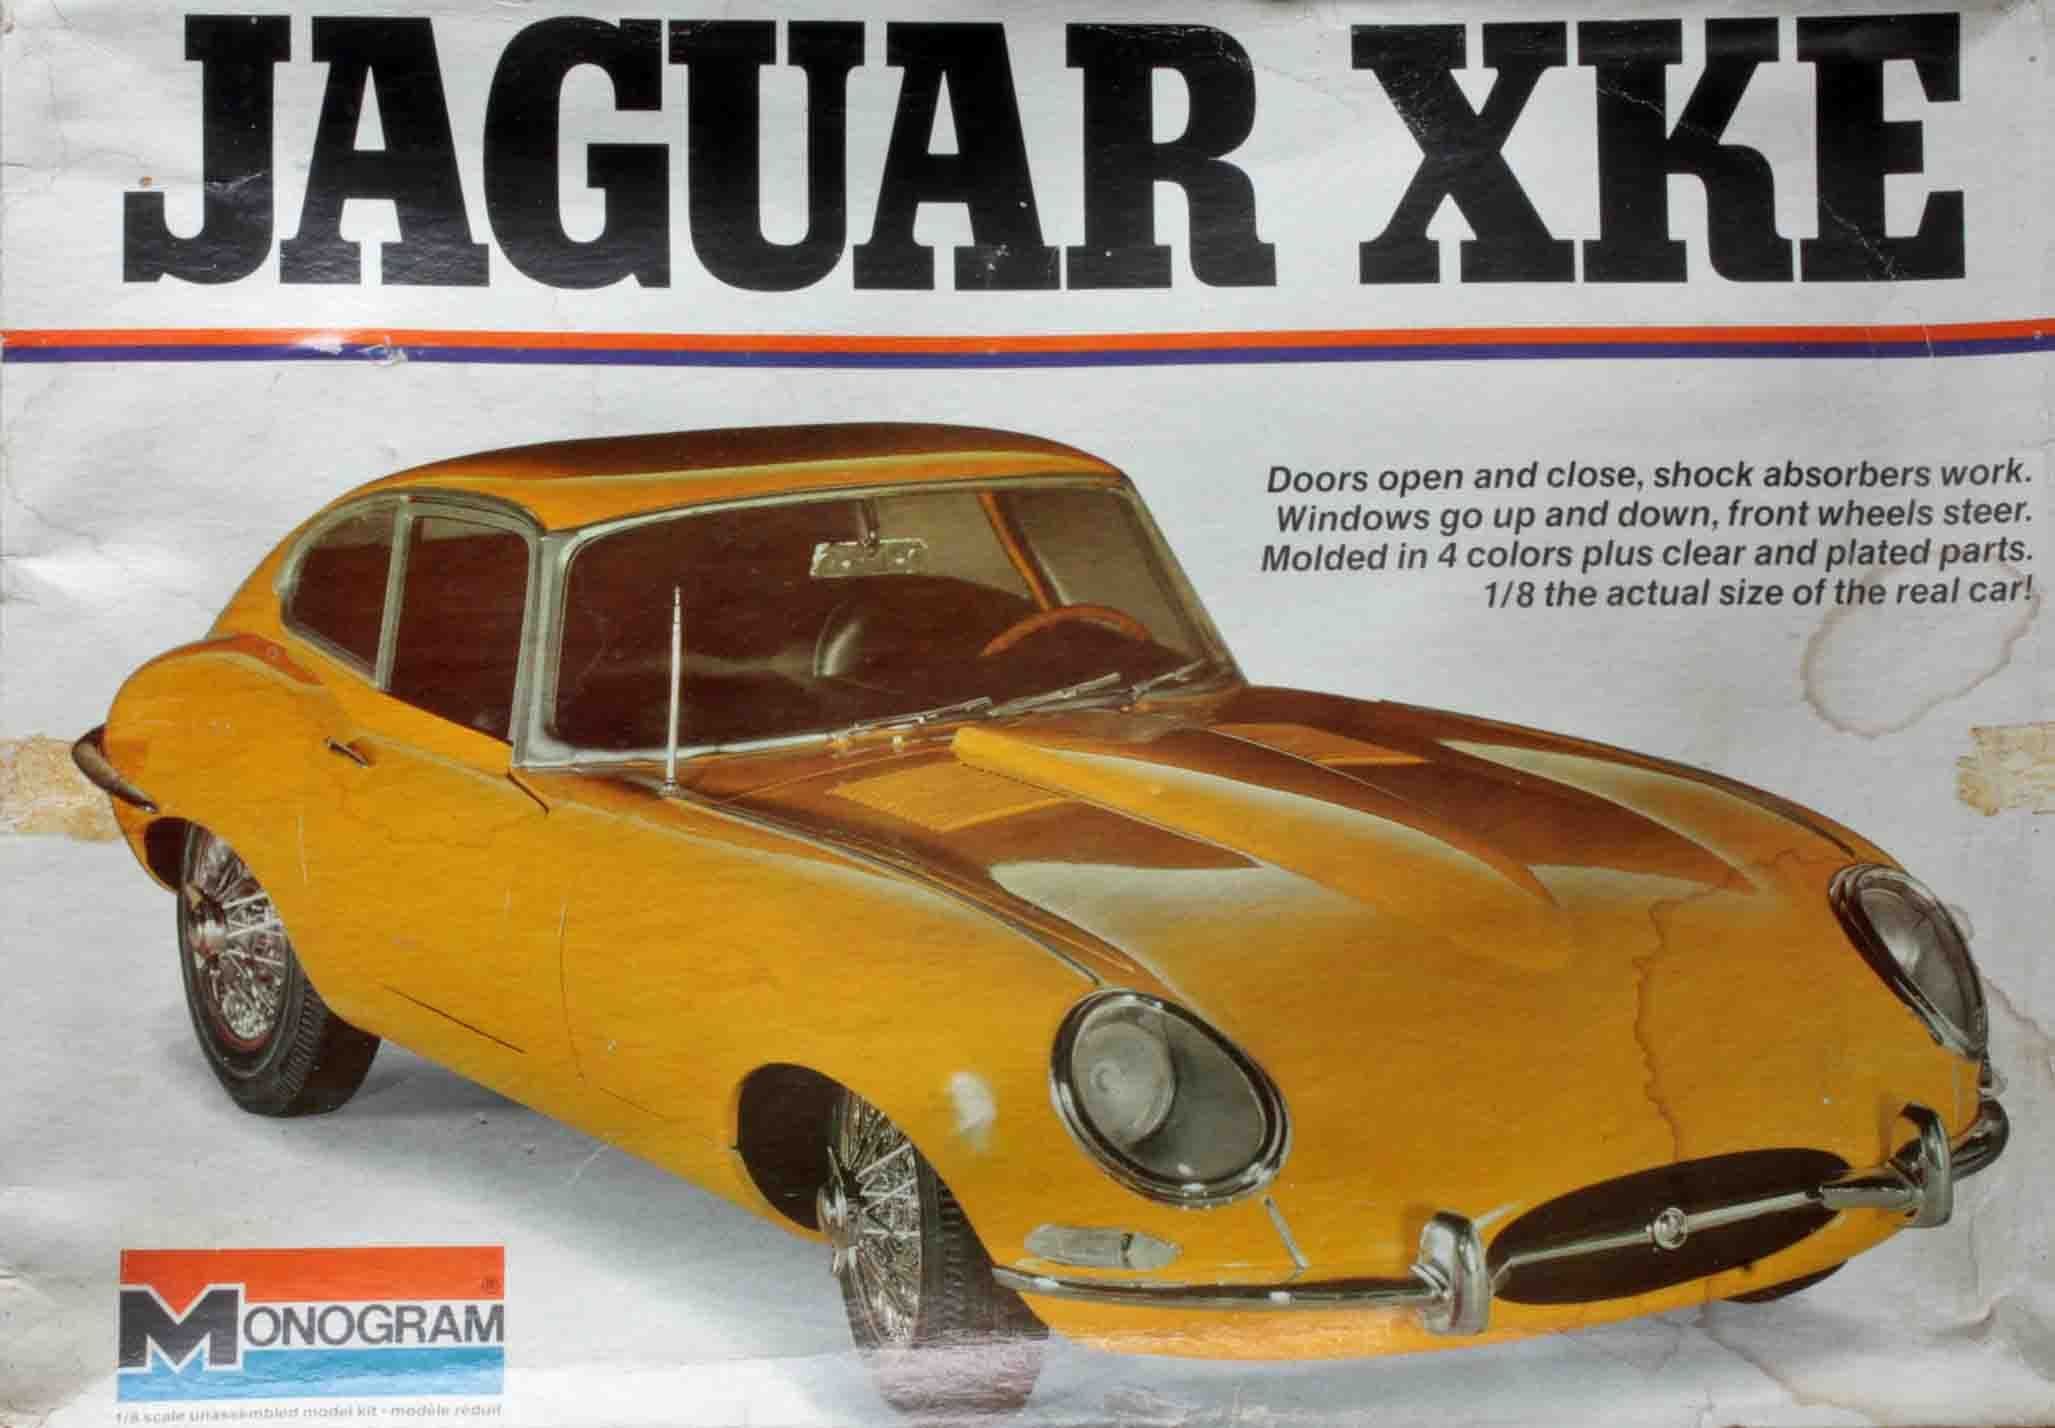 A rare 1970's Monogram 1:8 scale model kit of the iconic